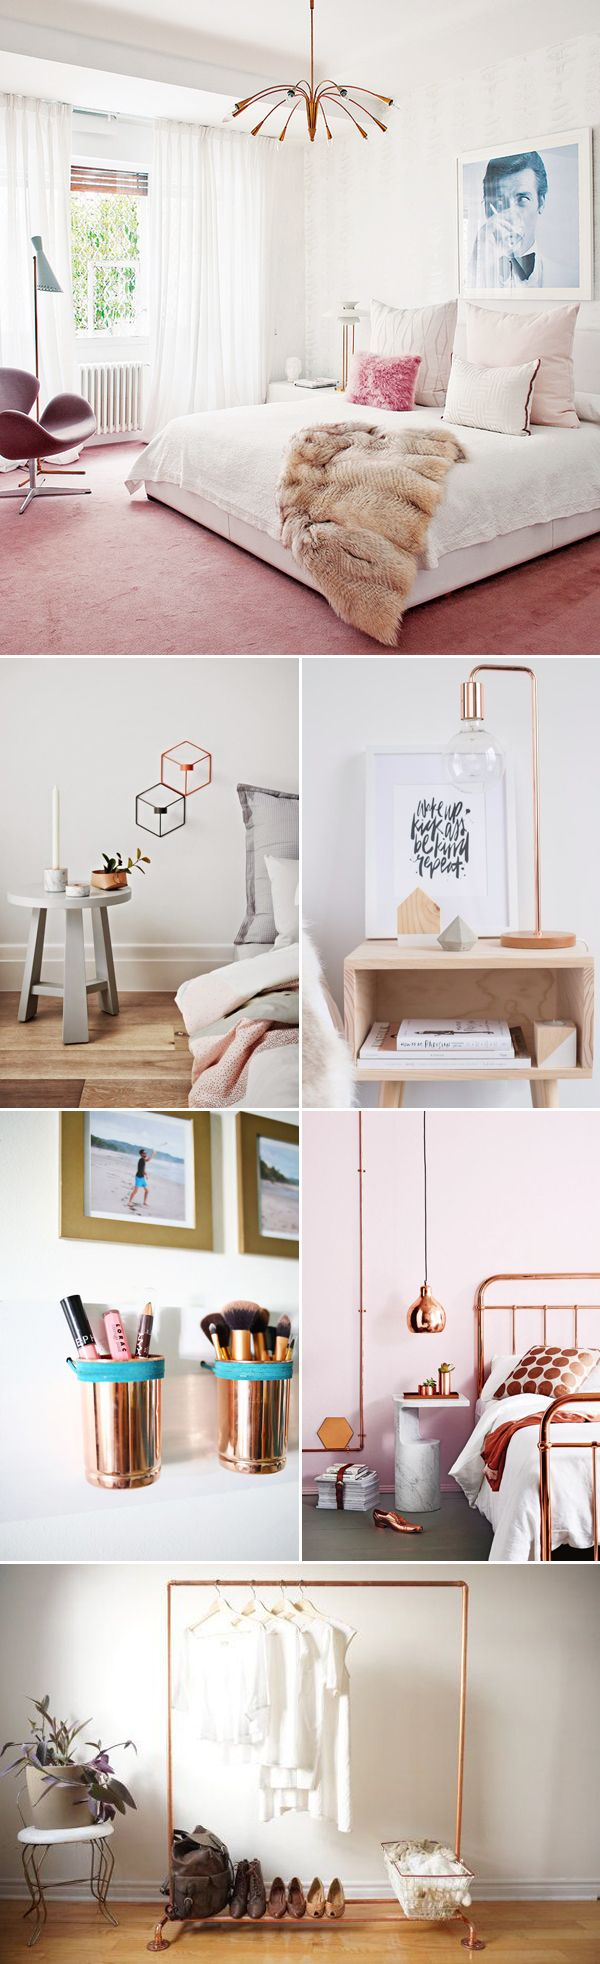 Canu0027t Get Enough Of Rose Gold! 30 Trendy Rose Gold Home Décor Ideas